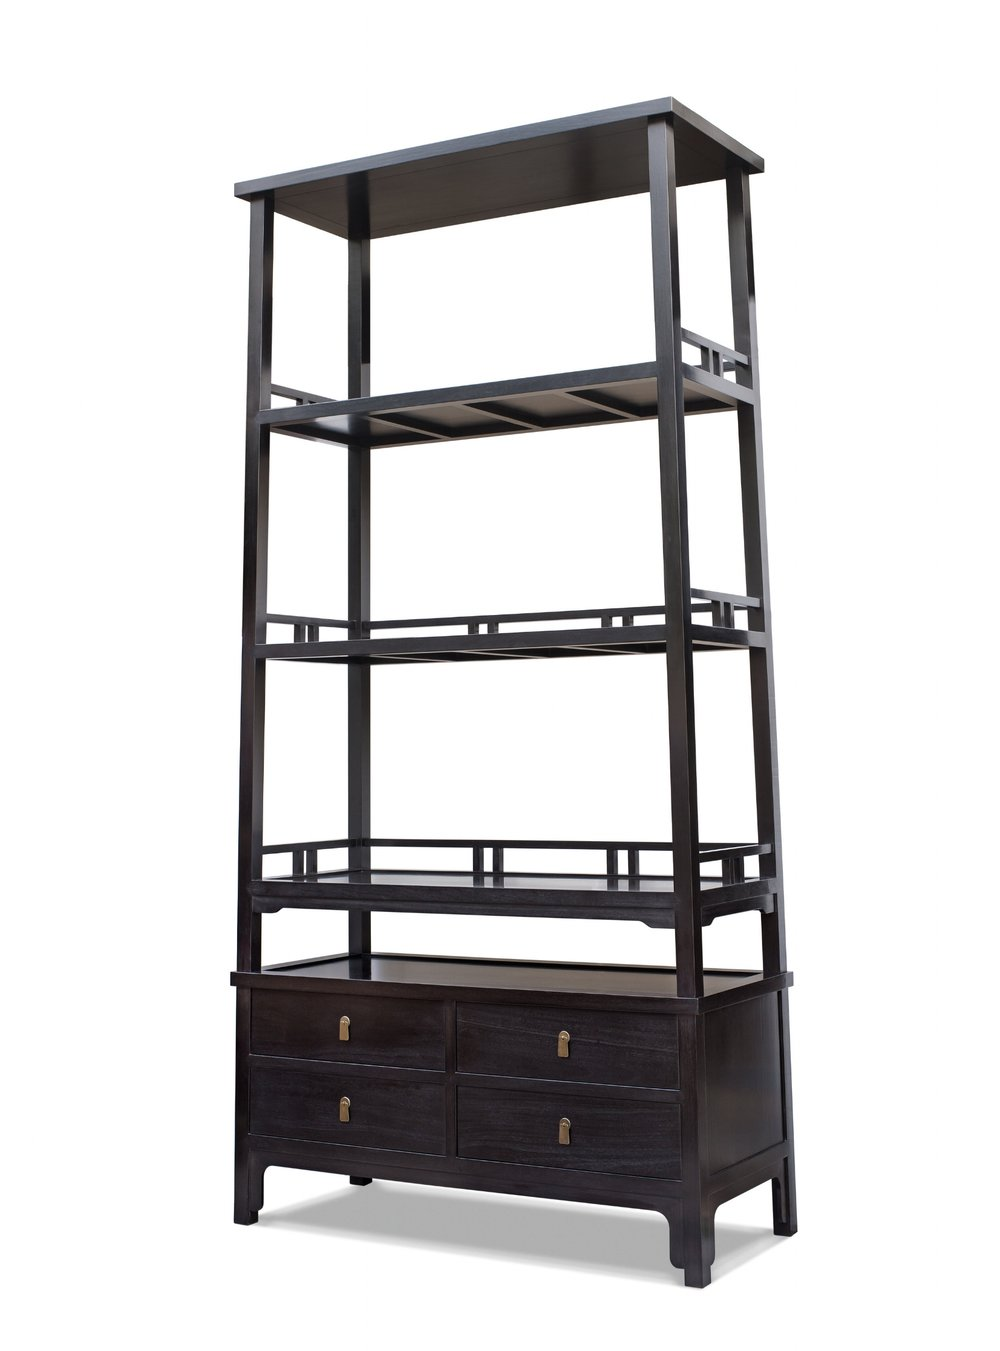 ....Bespoke Ming Style Chinese furniture : Bookshelf..特别定制明式中式家具: 书架....